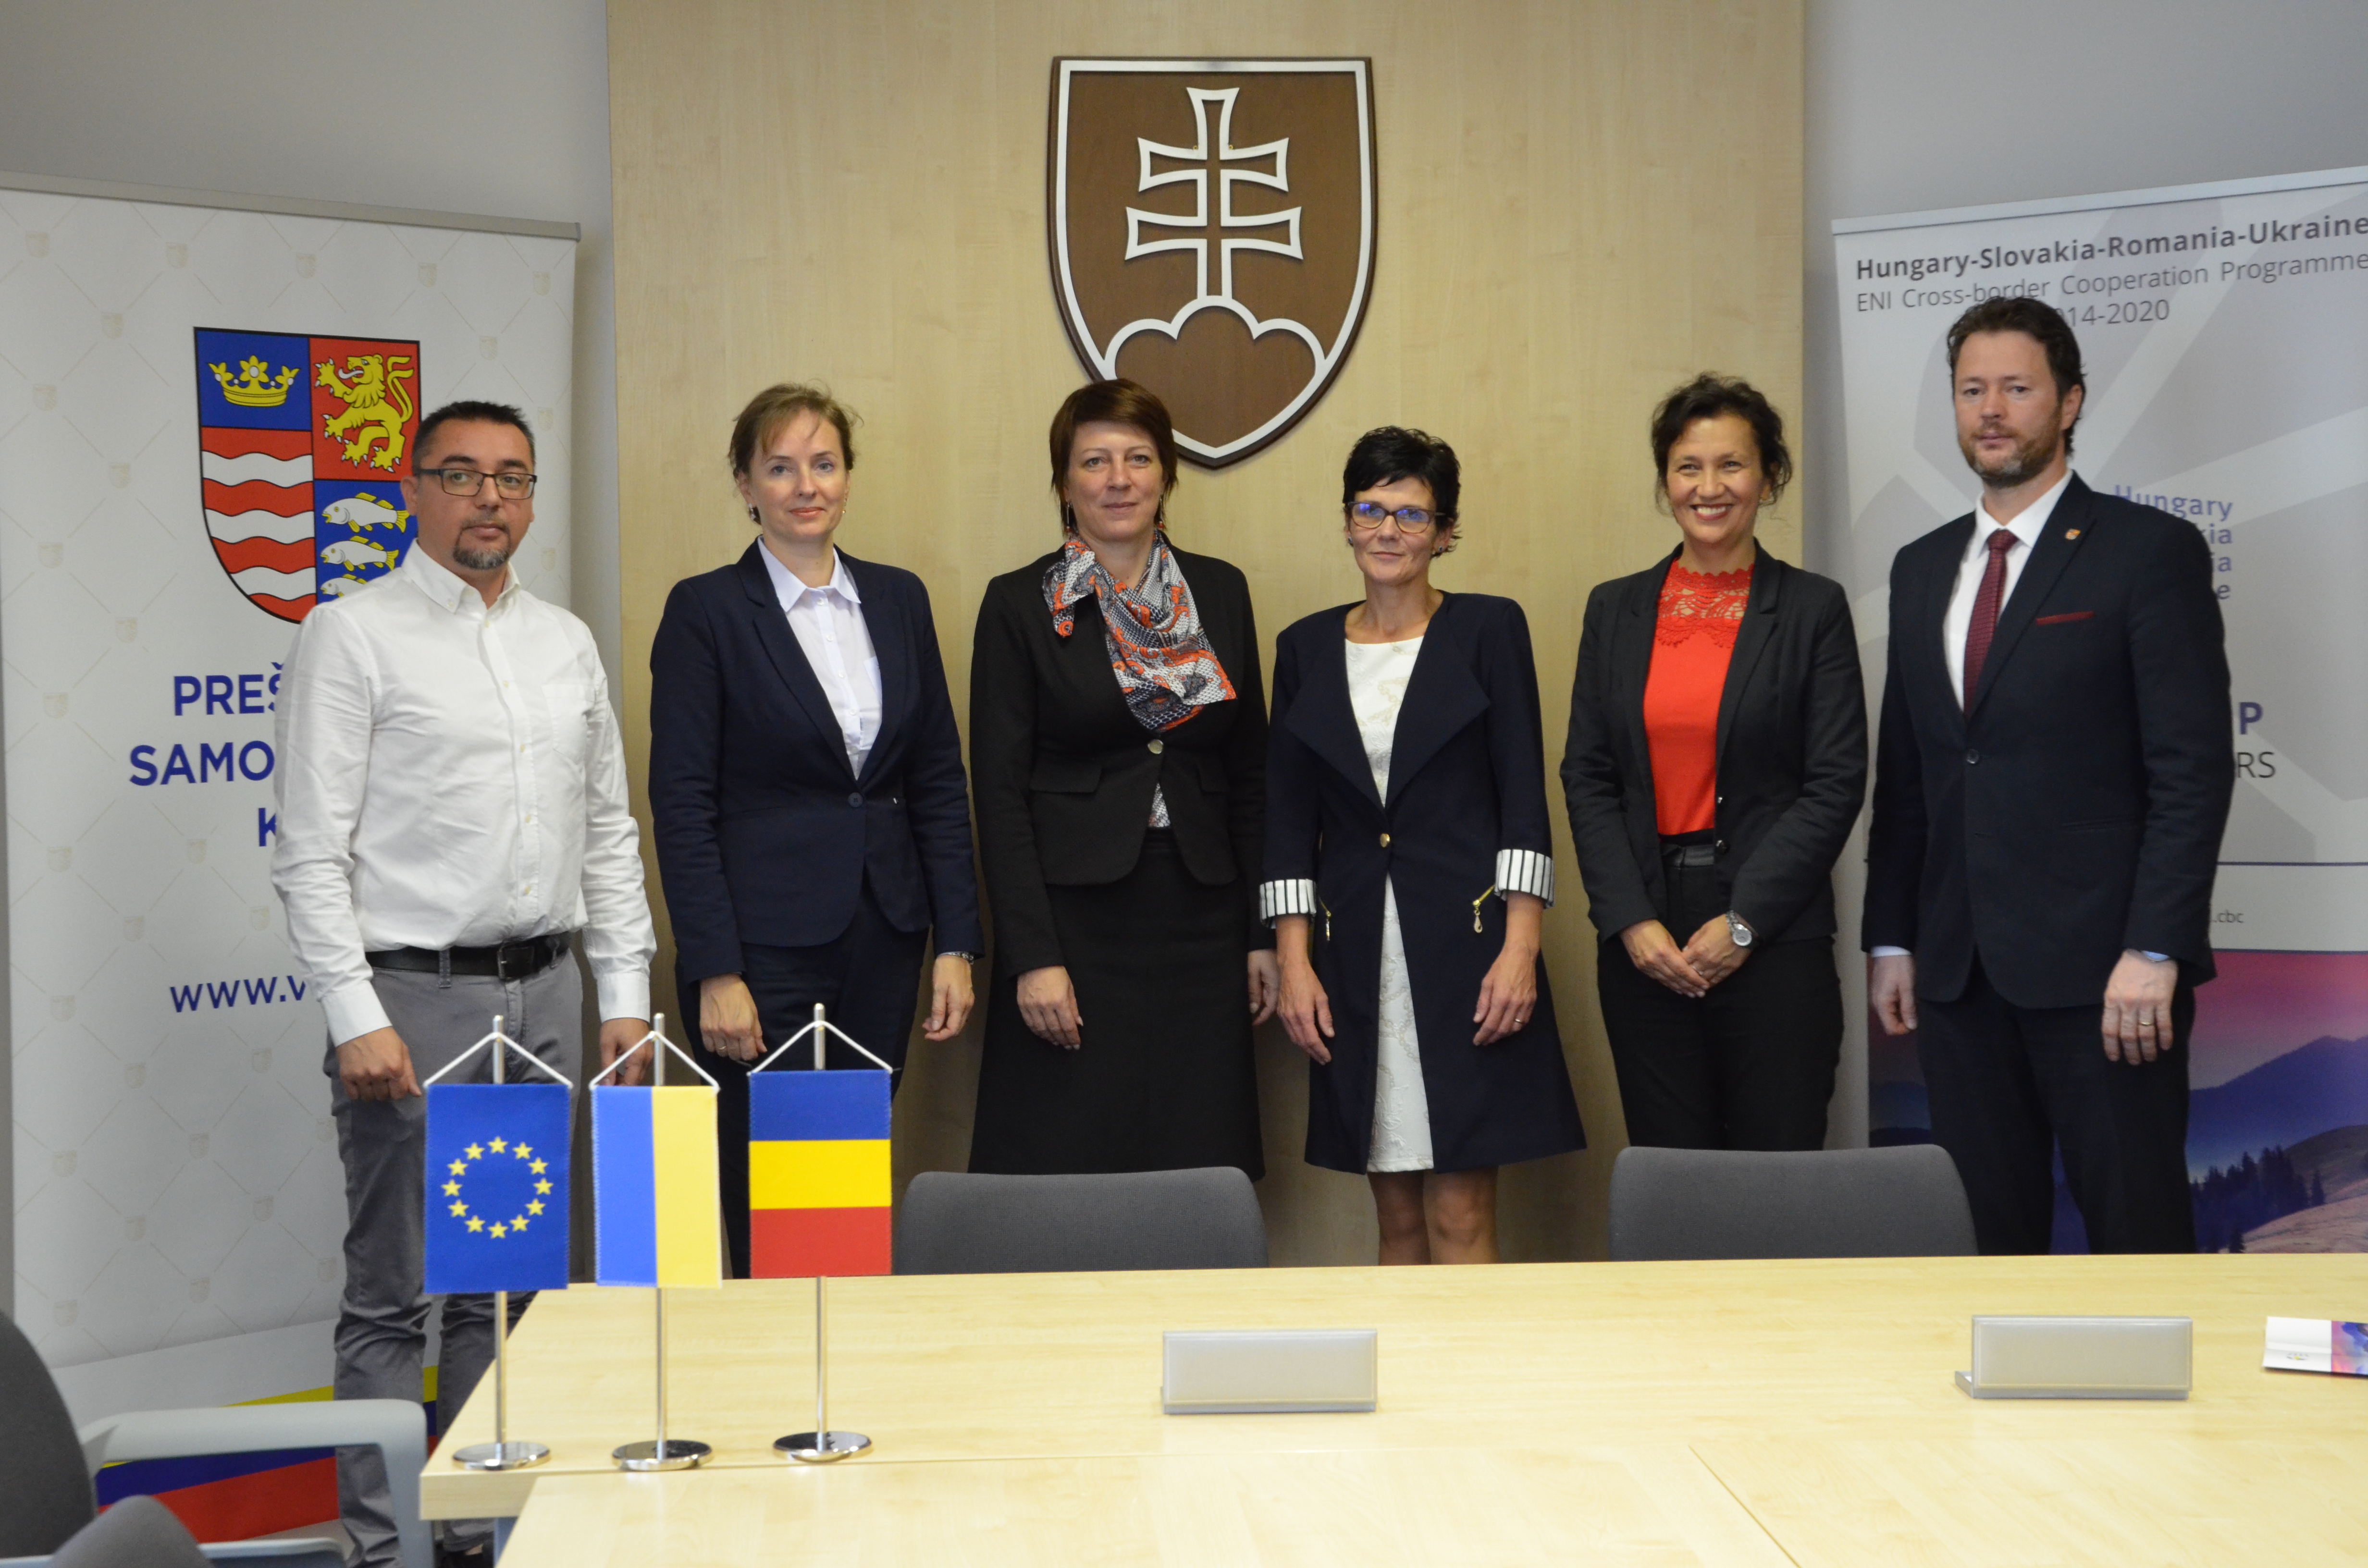 Grant contract signing ceremonies organised in Ivano-Frankivsk and Prešov